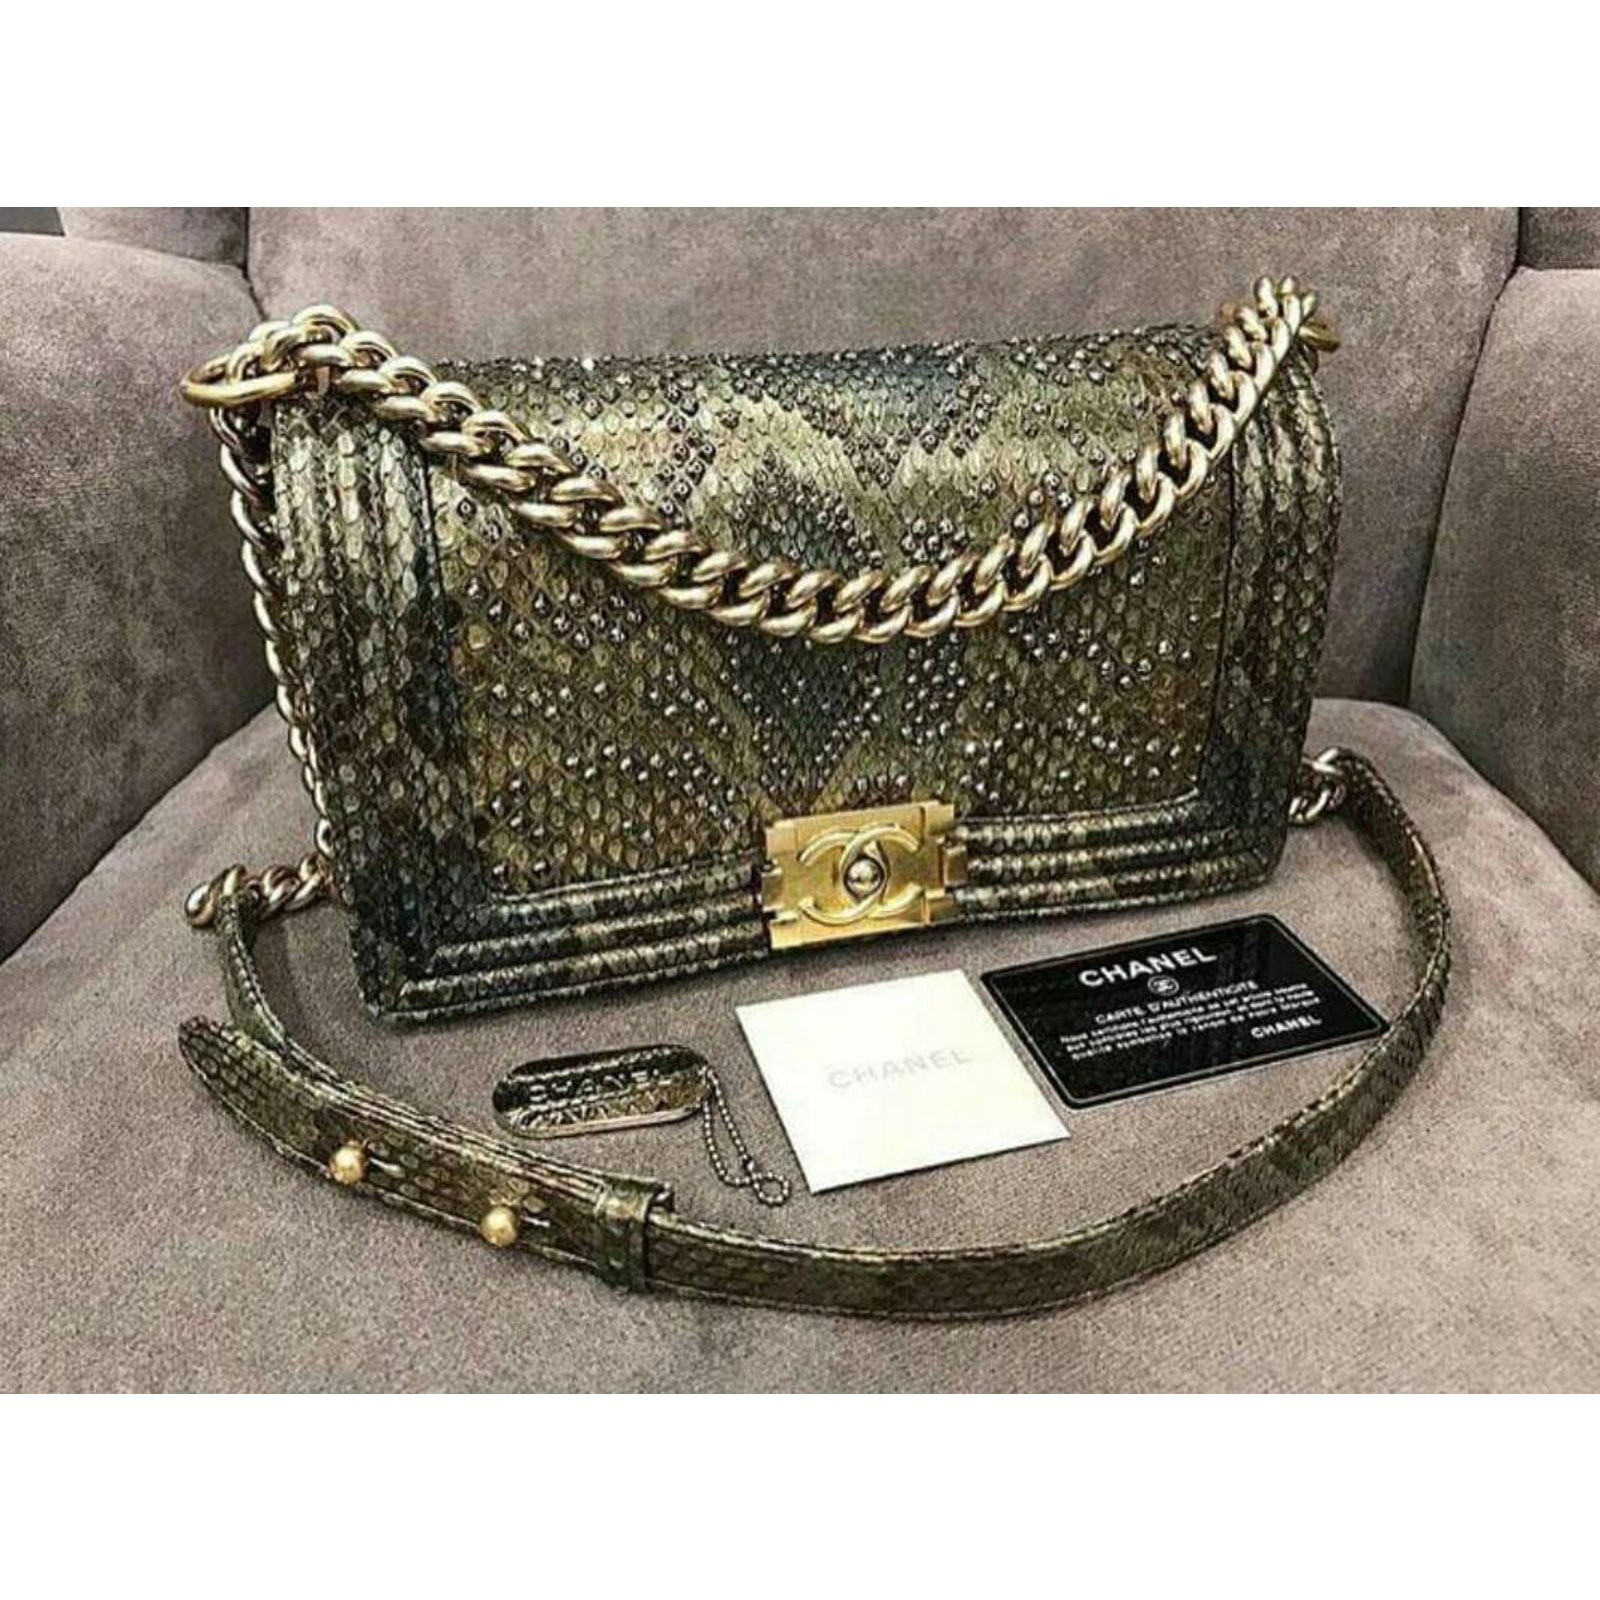 031236d340ac Chanel Medium Versailles Python Boy Bag Handbags Exotic leather Golden  ref.34190 - Joli Closet